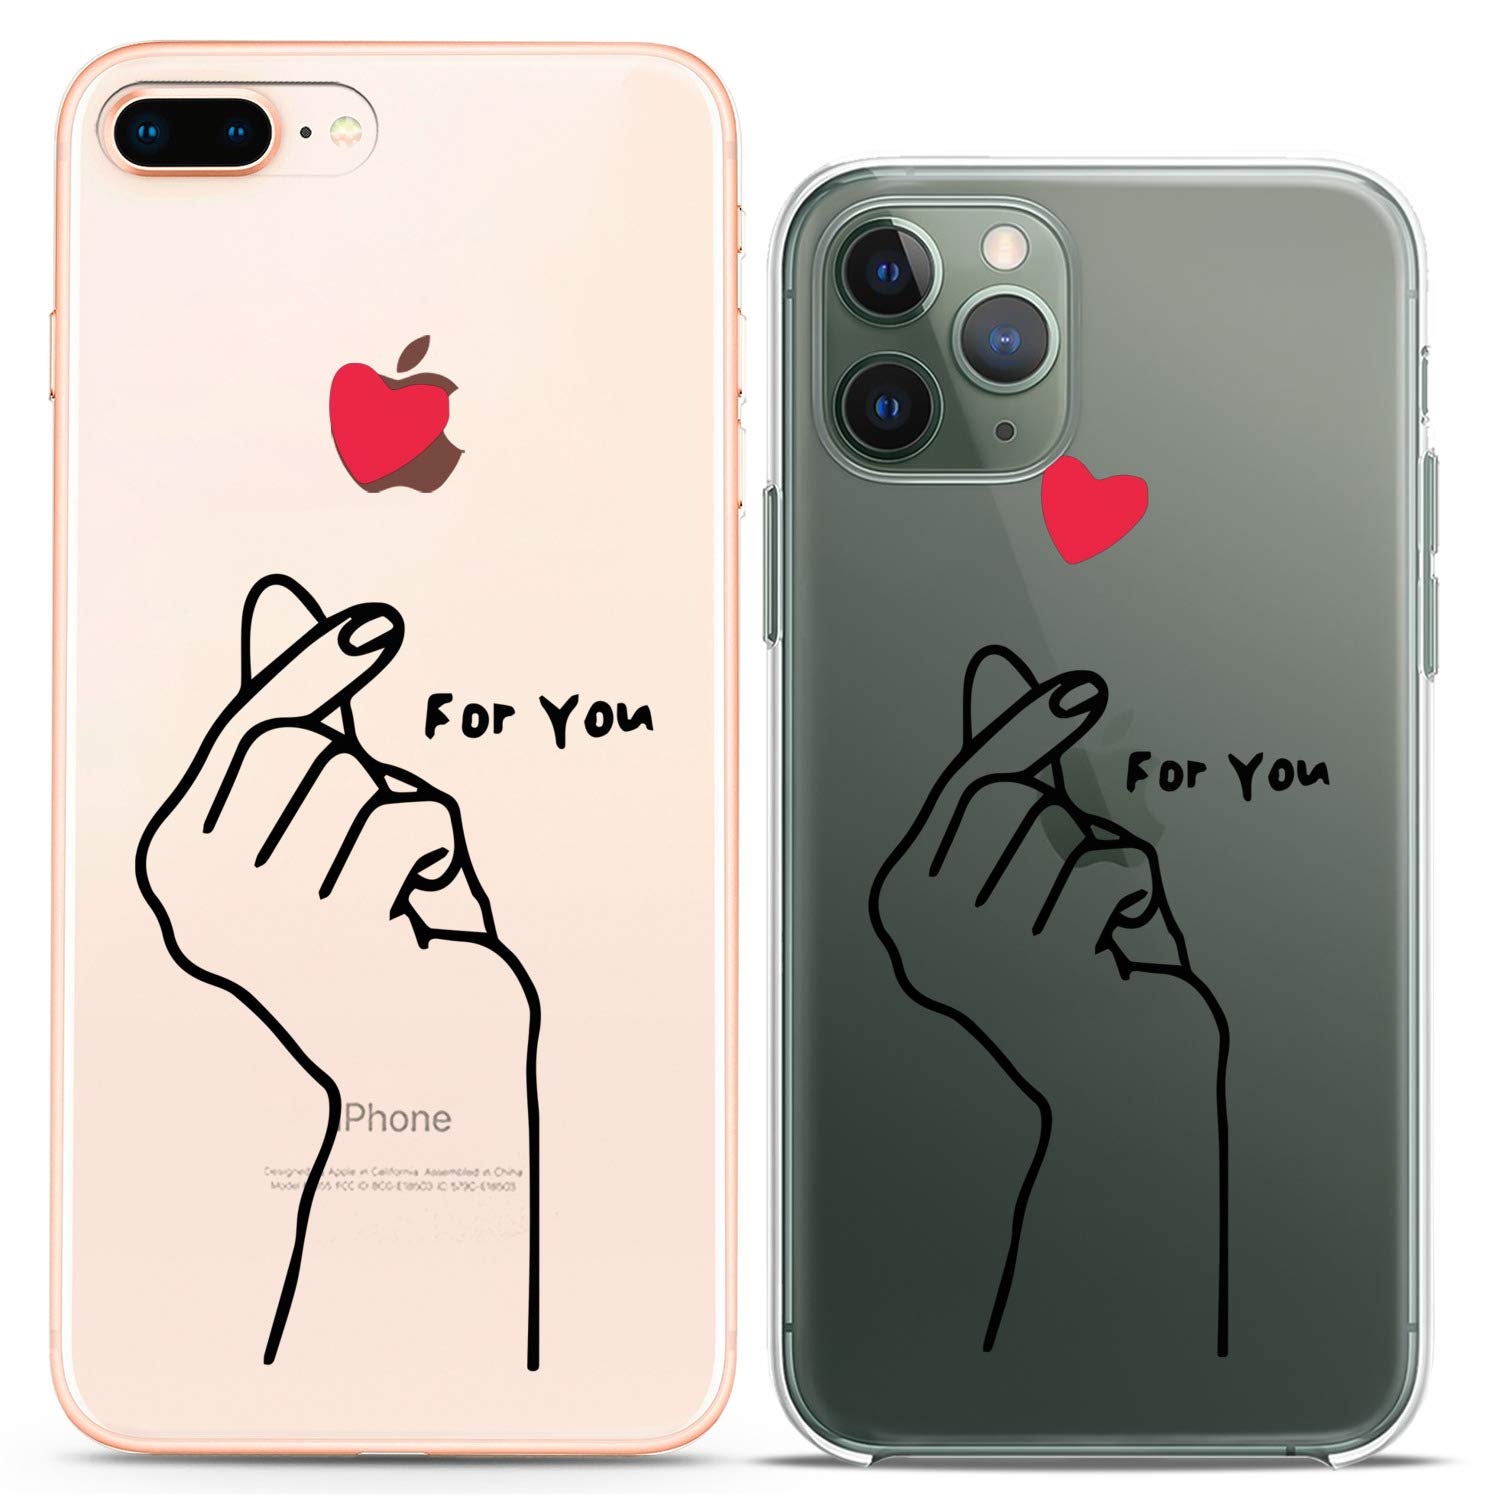 Cavka TPU Couple Cases for Apple iPhone 11 Pro Xs Max X Xr 8 Plus 7 6s SE 5s Korean Finger Clear For You Flexible Love Gift Silicone Cover Anniversary Matching Cute Print Art Mate Girlfriend Kawaii